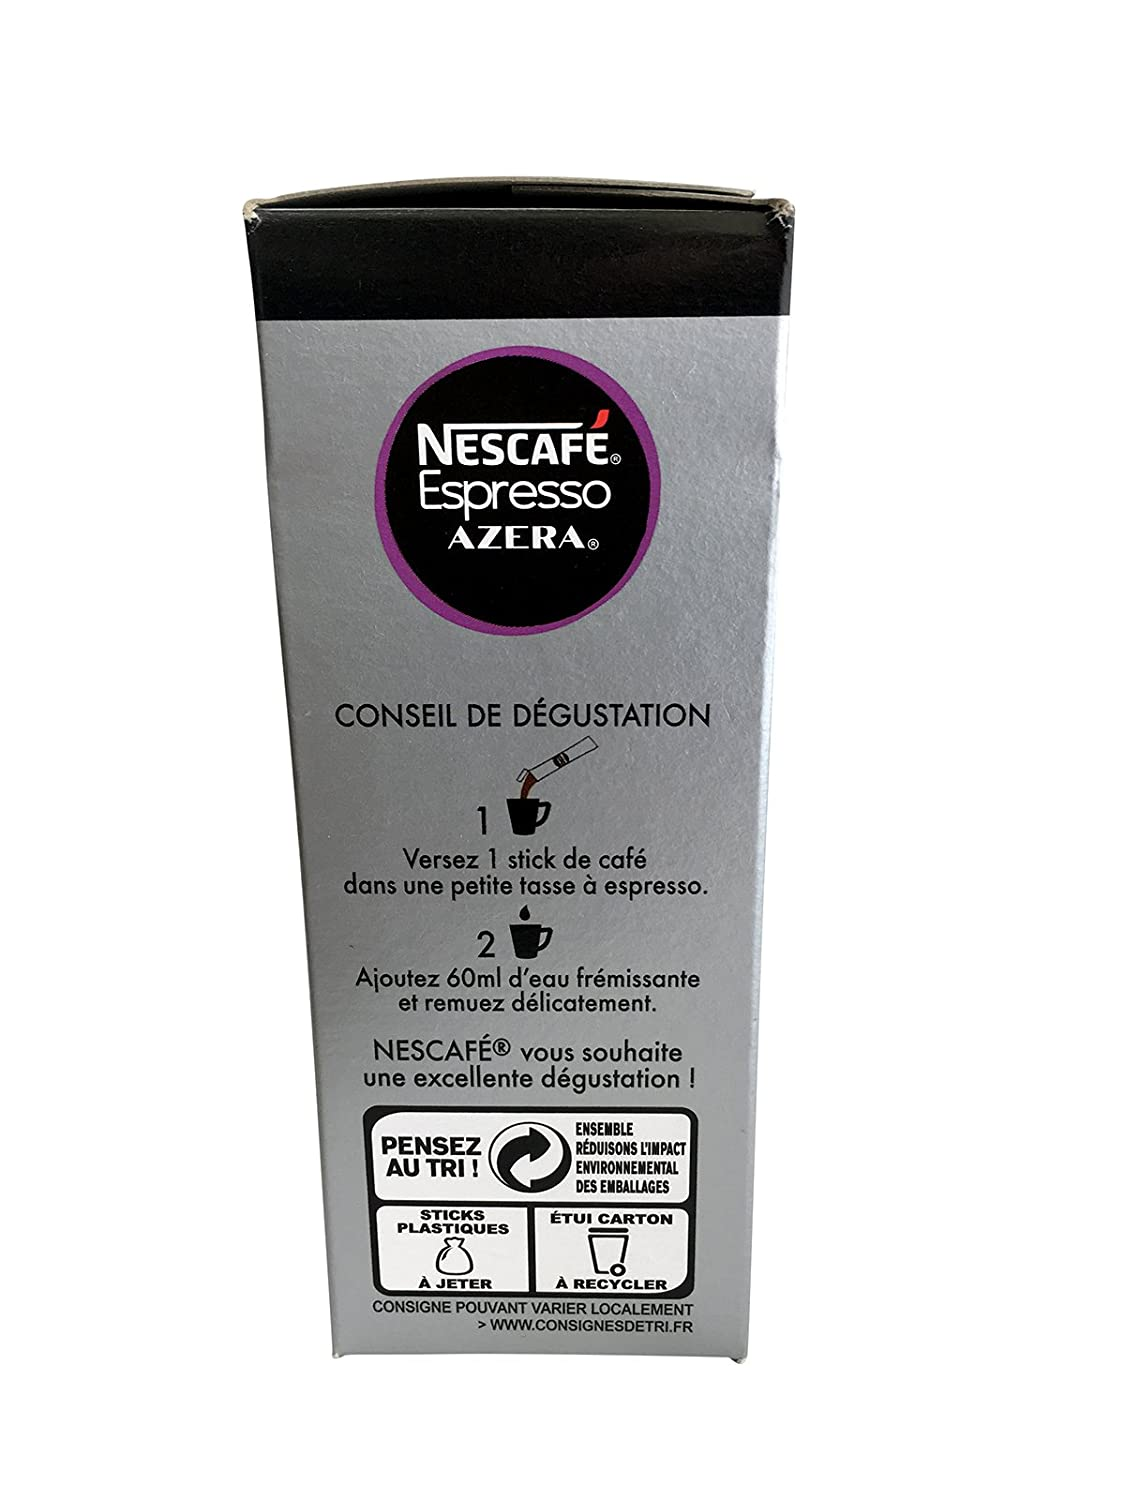 Amazoncom Nescafe Instant Coffee Espresso 25 Stick Pack Grocery